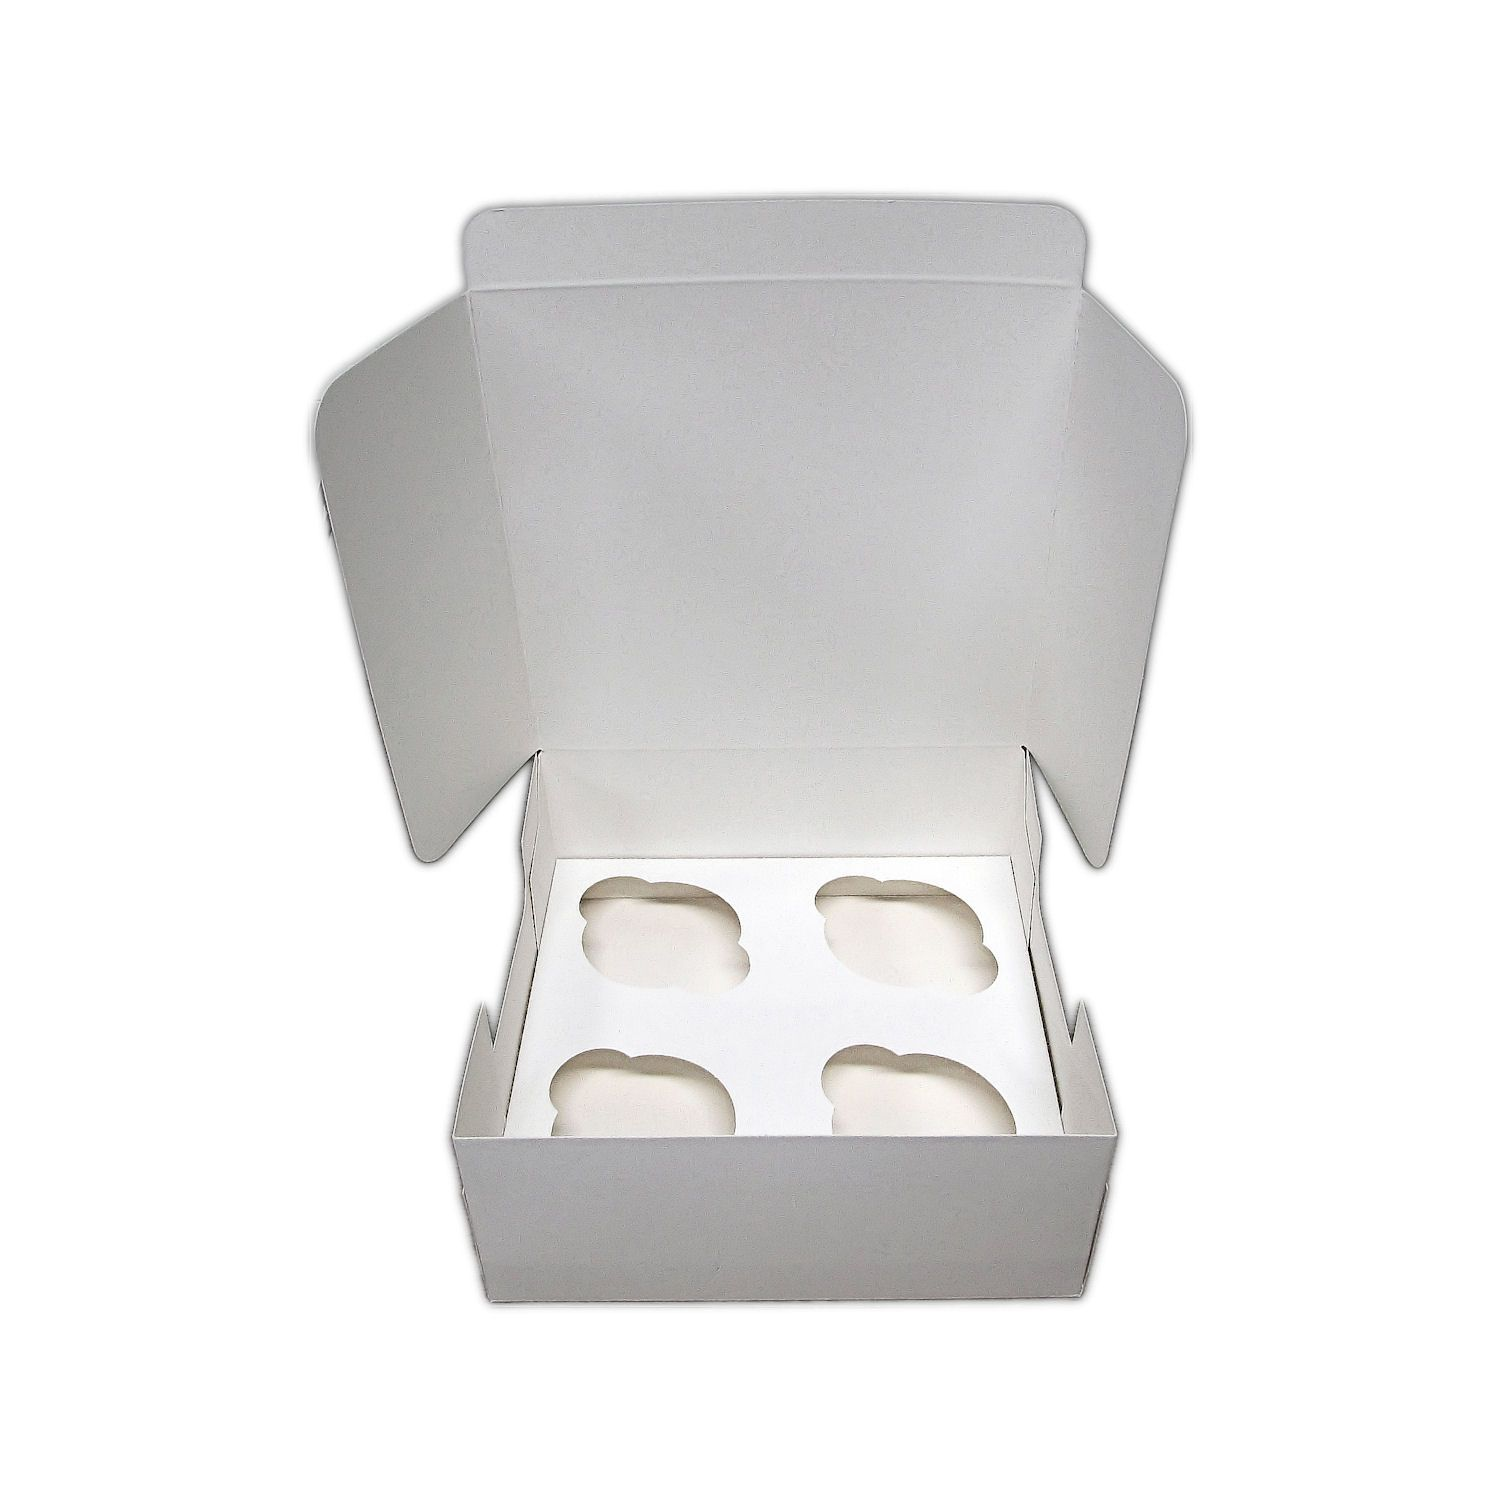 CUPCAKEBEE4025 - 4 Cupcake POP UP Box with Inserts 7 x 7 x 3 Non-Window - Pack of 25